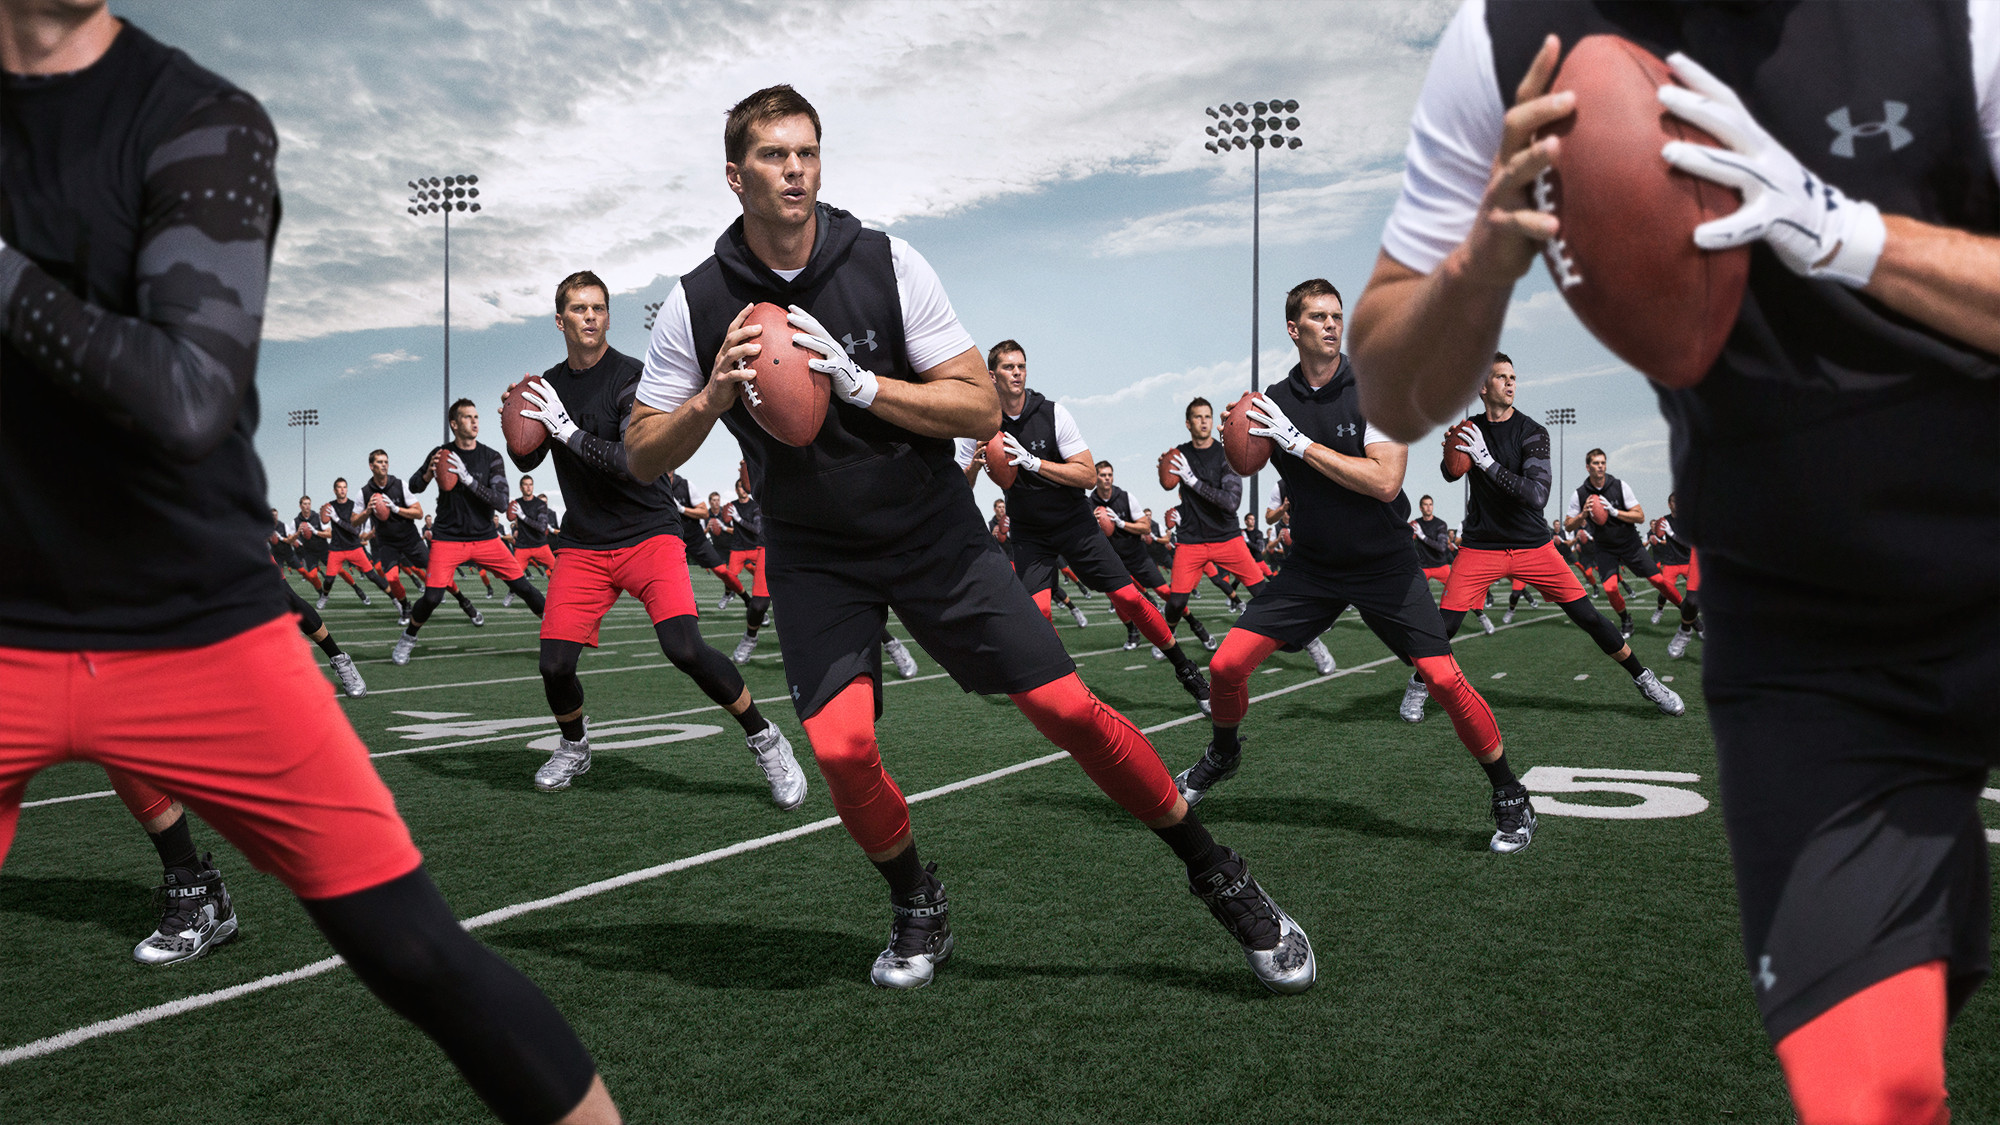 bal-under-armour-shows-commitment-to-tom-brady-in-new-ad-20150910.jpg